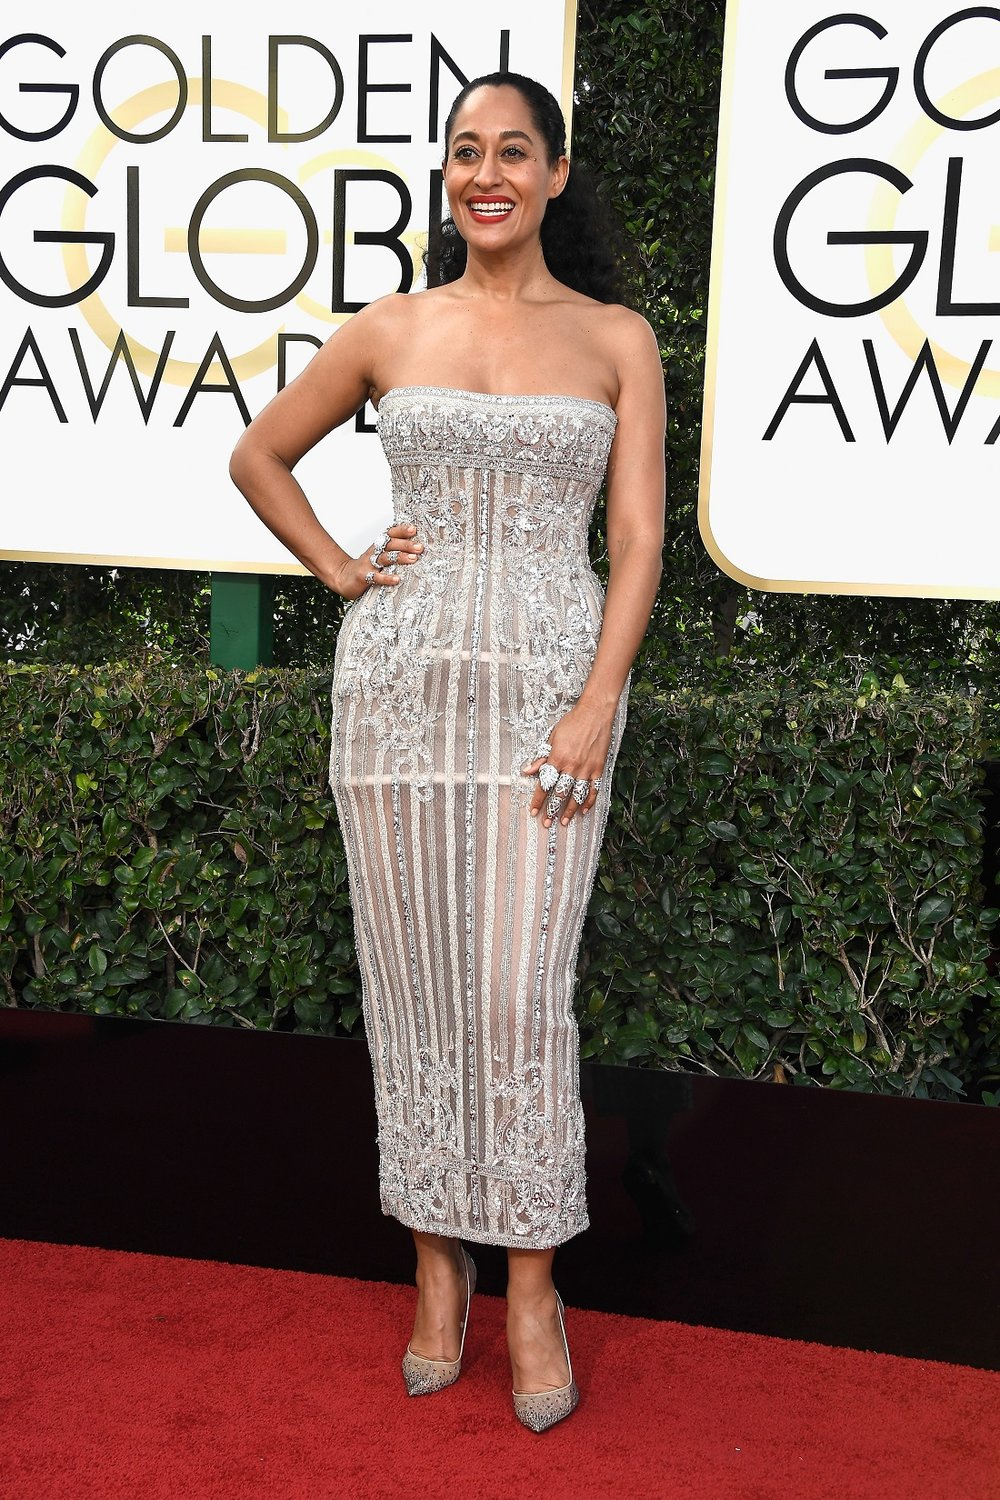 Tracee Ellis Ross in a Zuhair Murad Couture dress